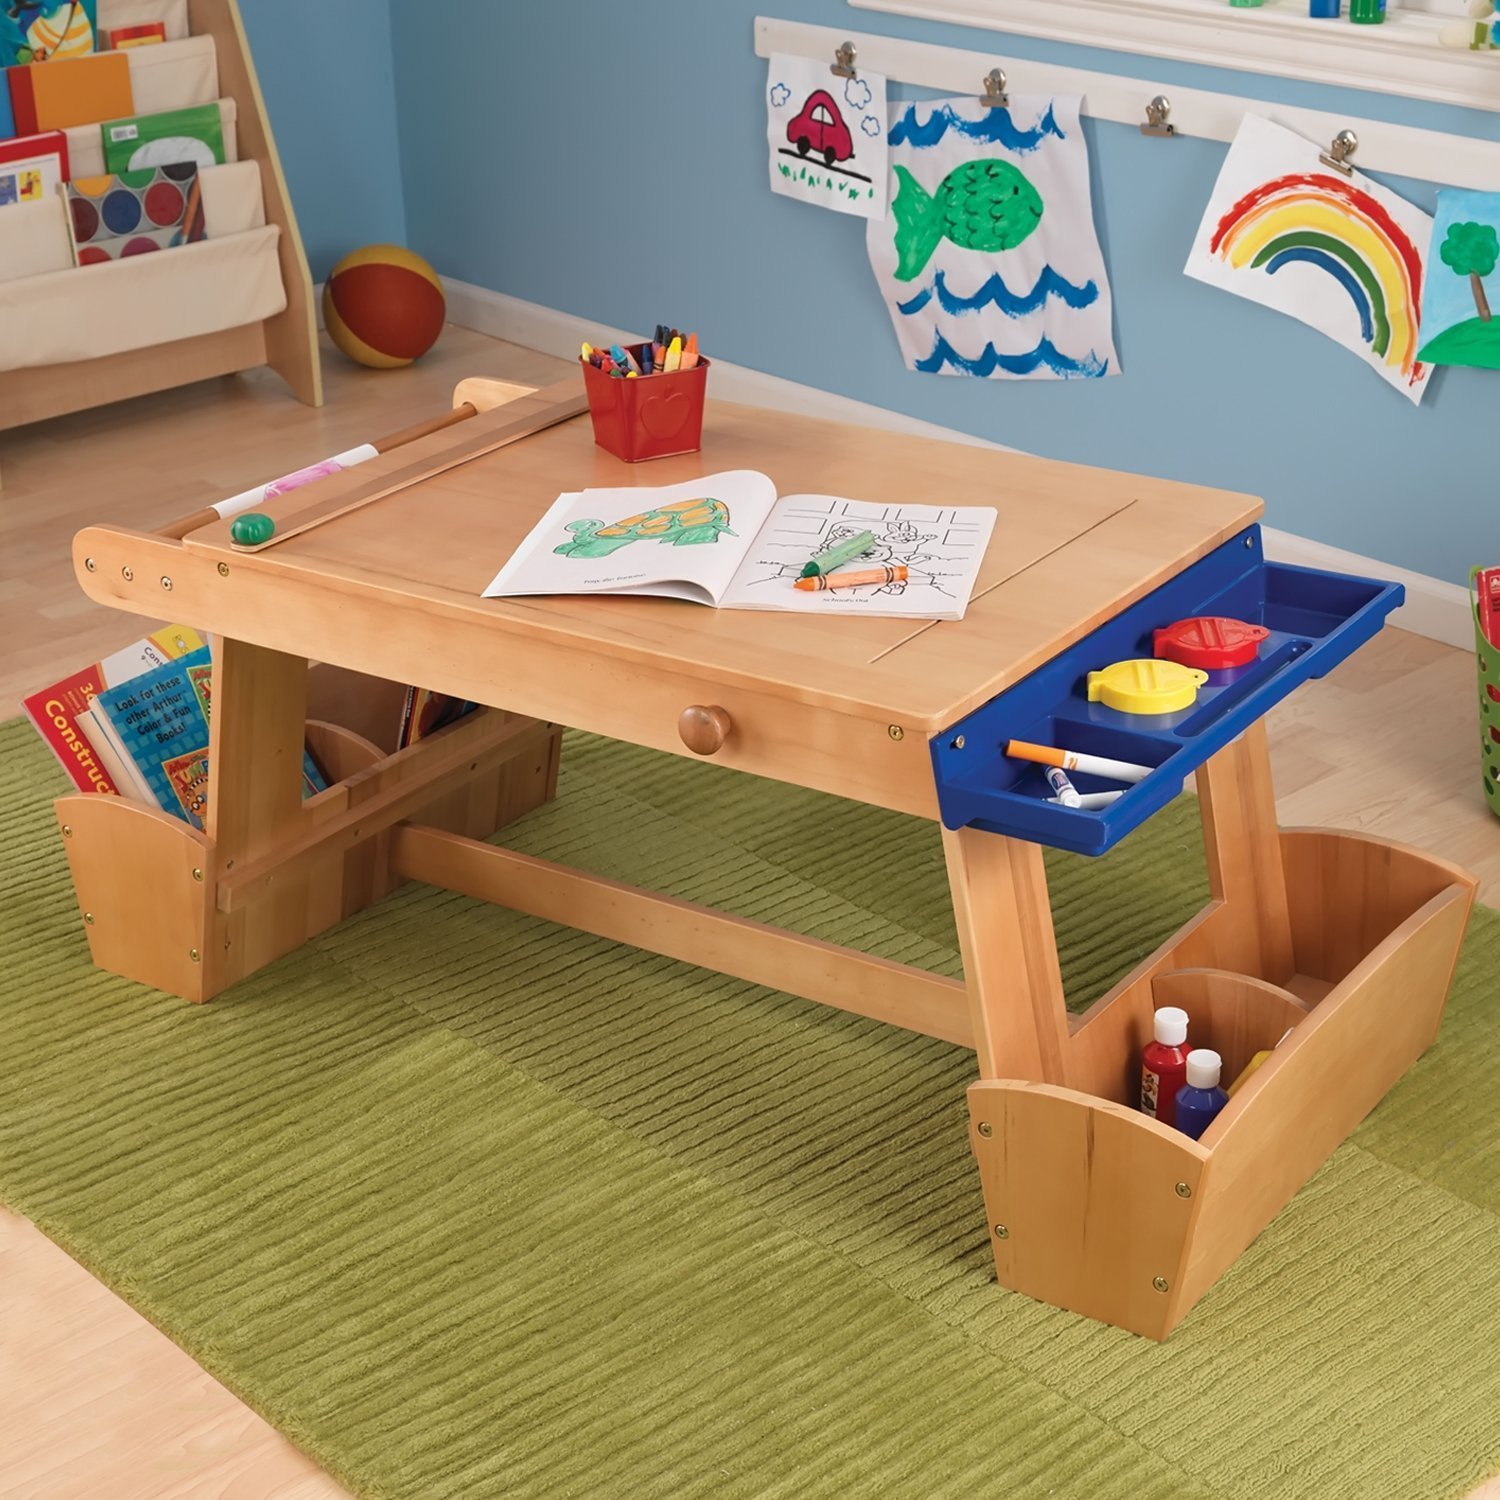 Kids Arts Crafts Table Solid Wood Work Buy Online In Mongolia At Desertcart